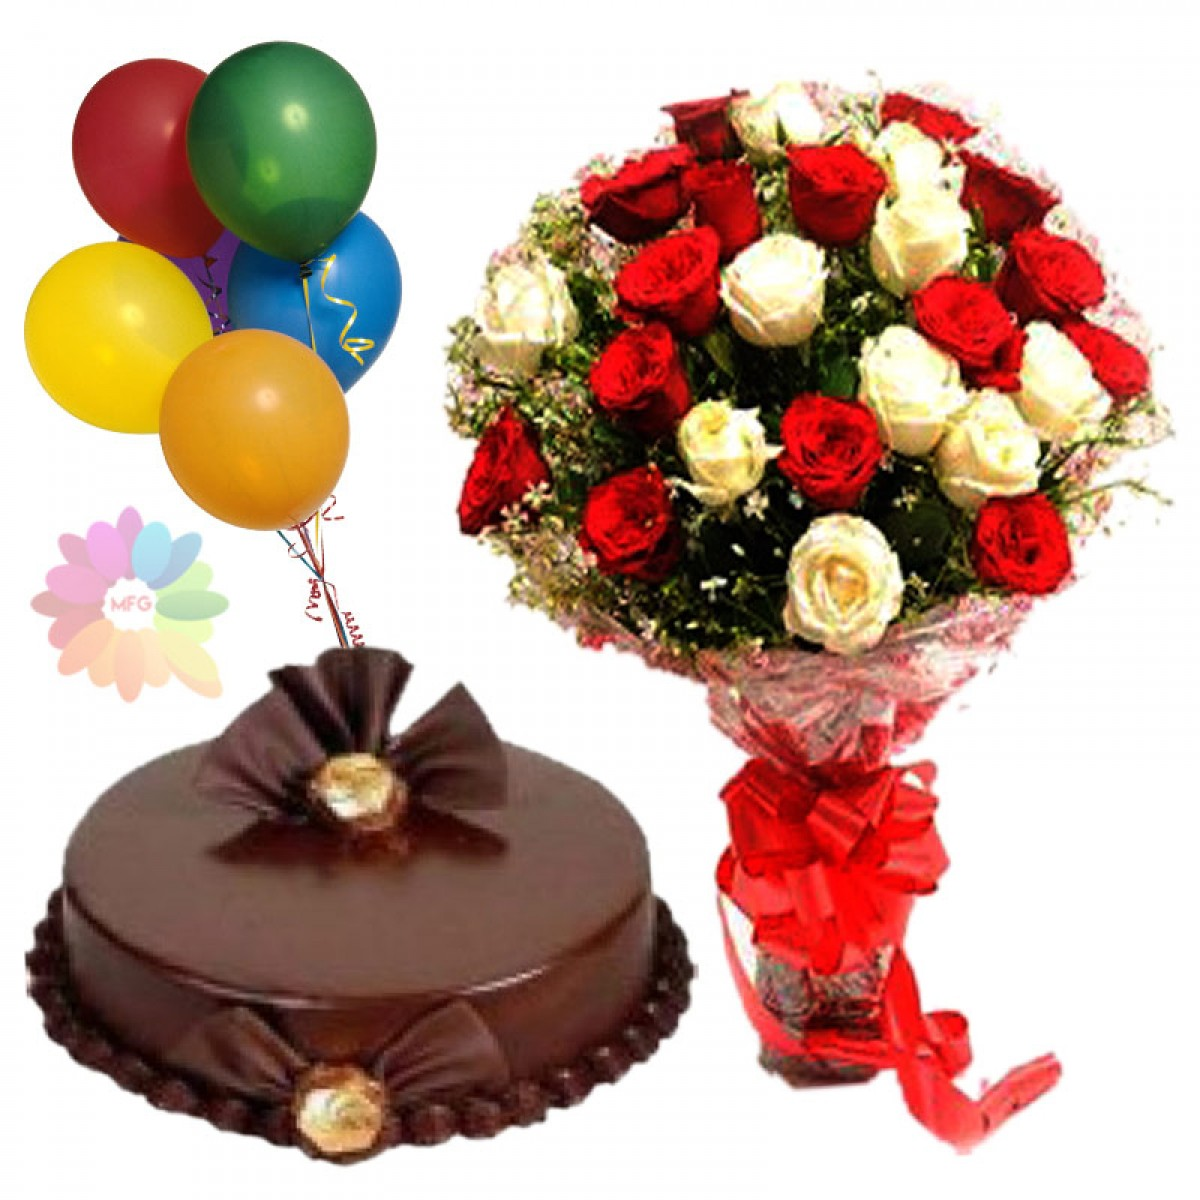 picture of birthday cake and balloons ; 14_4